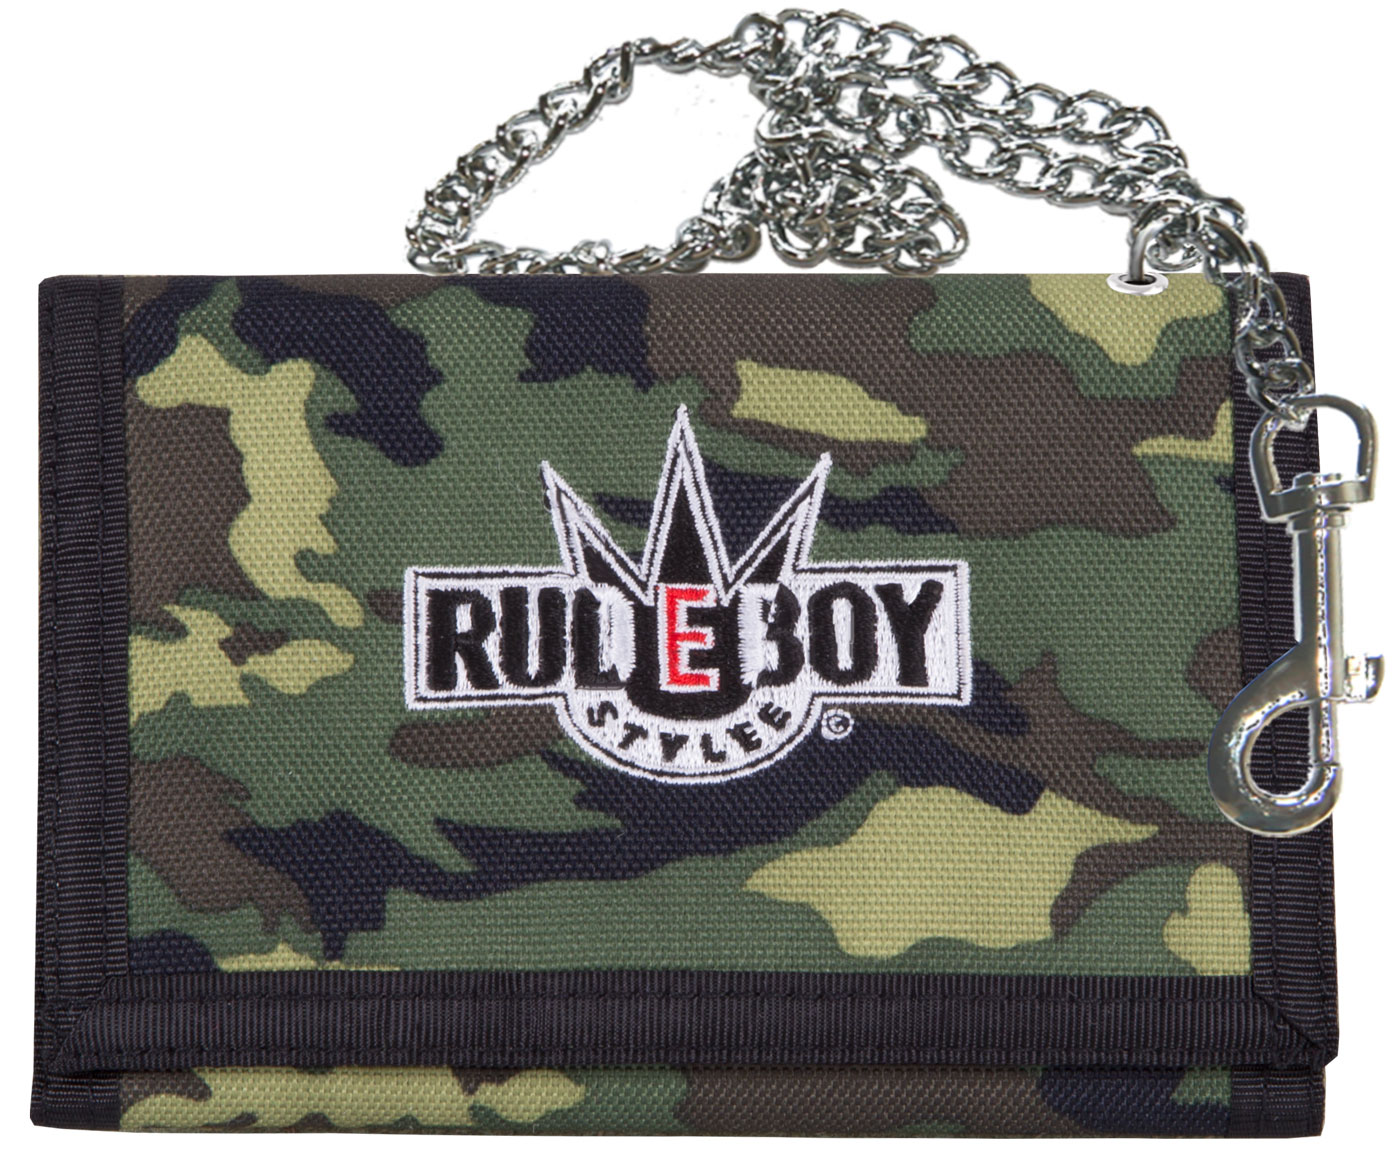 Rudeboy Wallets